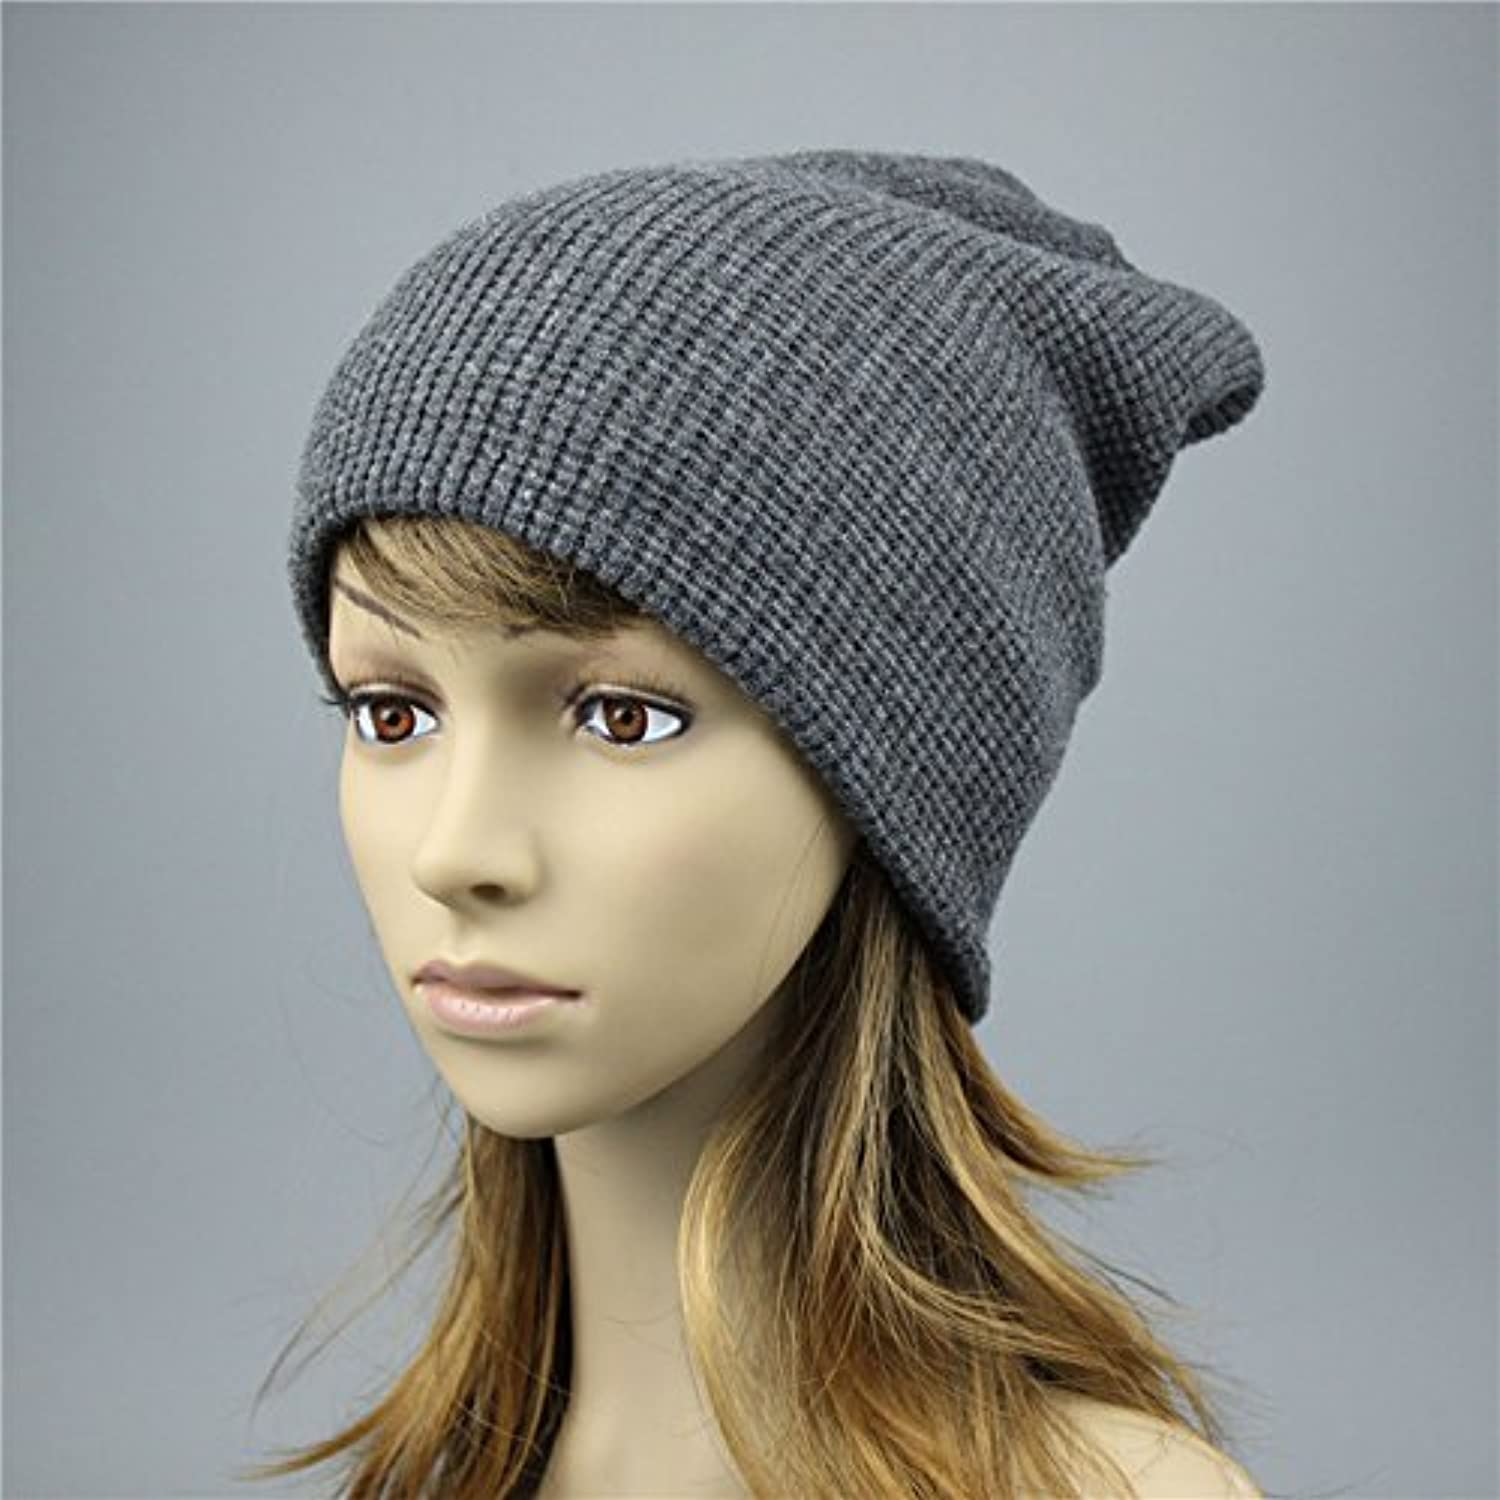 QETUOAD Women's Winter Hats Knitted Mating Hat for Women Skully Beanie Female Black Beanies Js271A